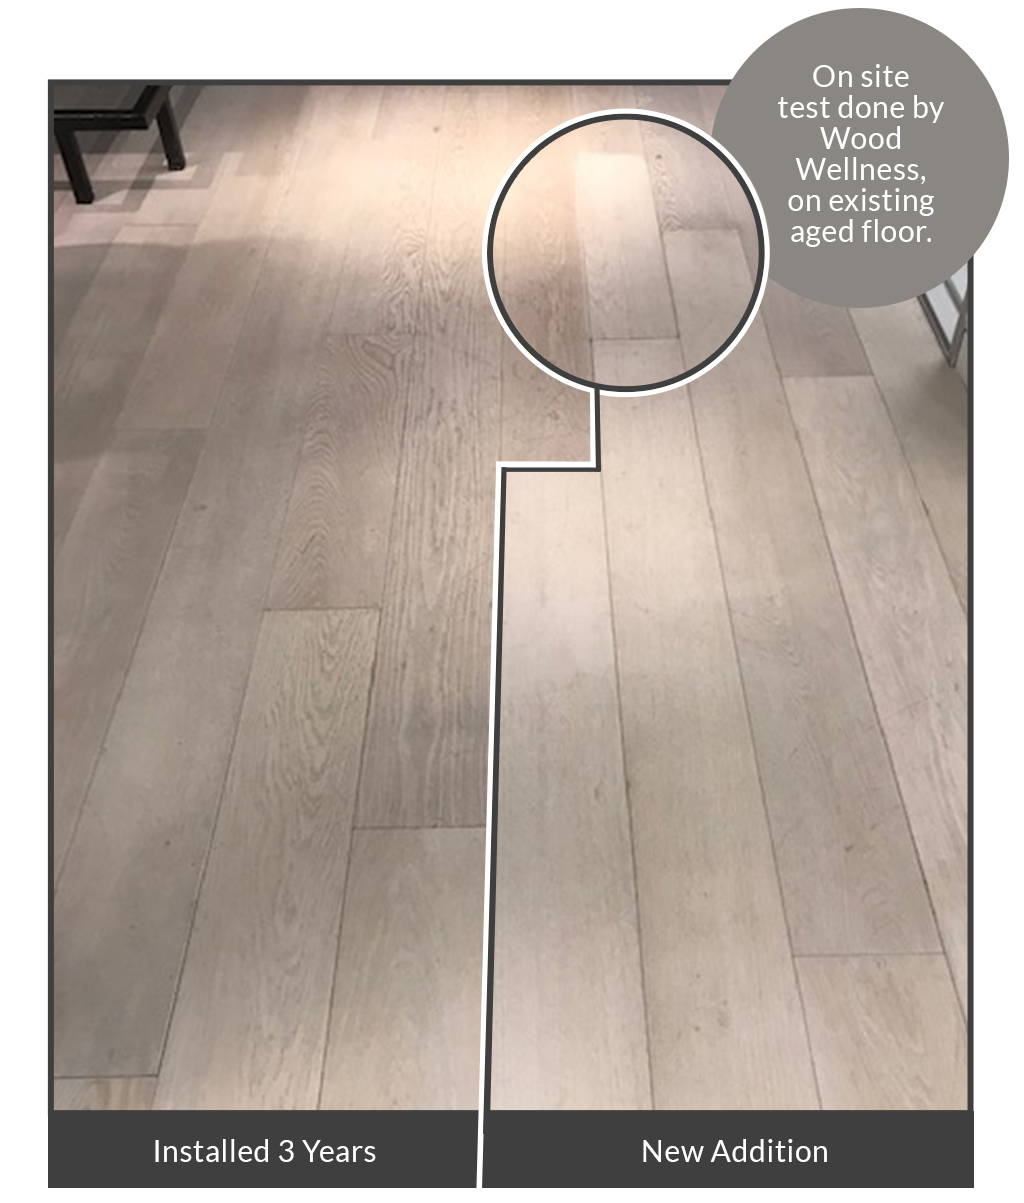 Image of a new floor addition installed by Wood Wellness